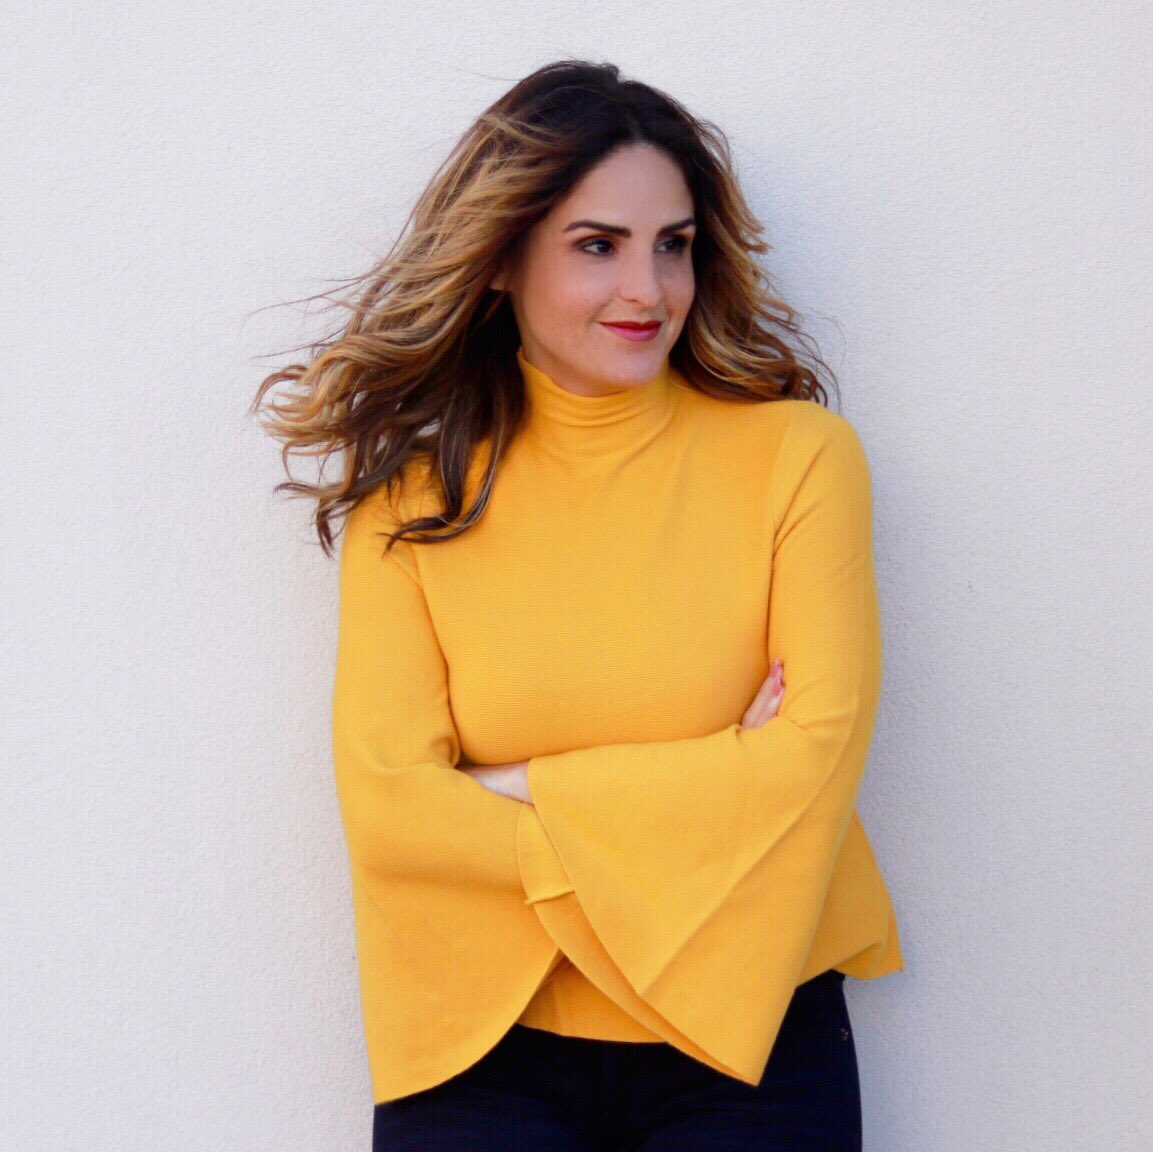 Look at the stars, look how they shine for you, and everything you do, yeah they were all yellow  I'm playing w/more fall brights w/this yellow dramatic bell-sleeve top. Shop my outfit on #liketkit:  http:// liketk.it/2t88R  &nbsp;   #ootd #fallfashion #fabeveryday #expresslife<br>http://pic.twitter.com/6VMeUcTpHk